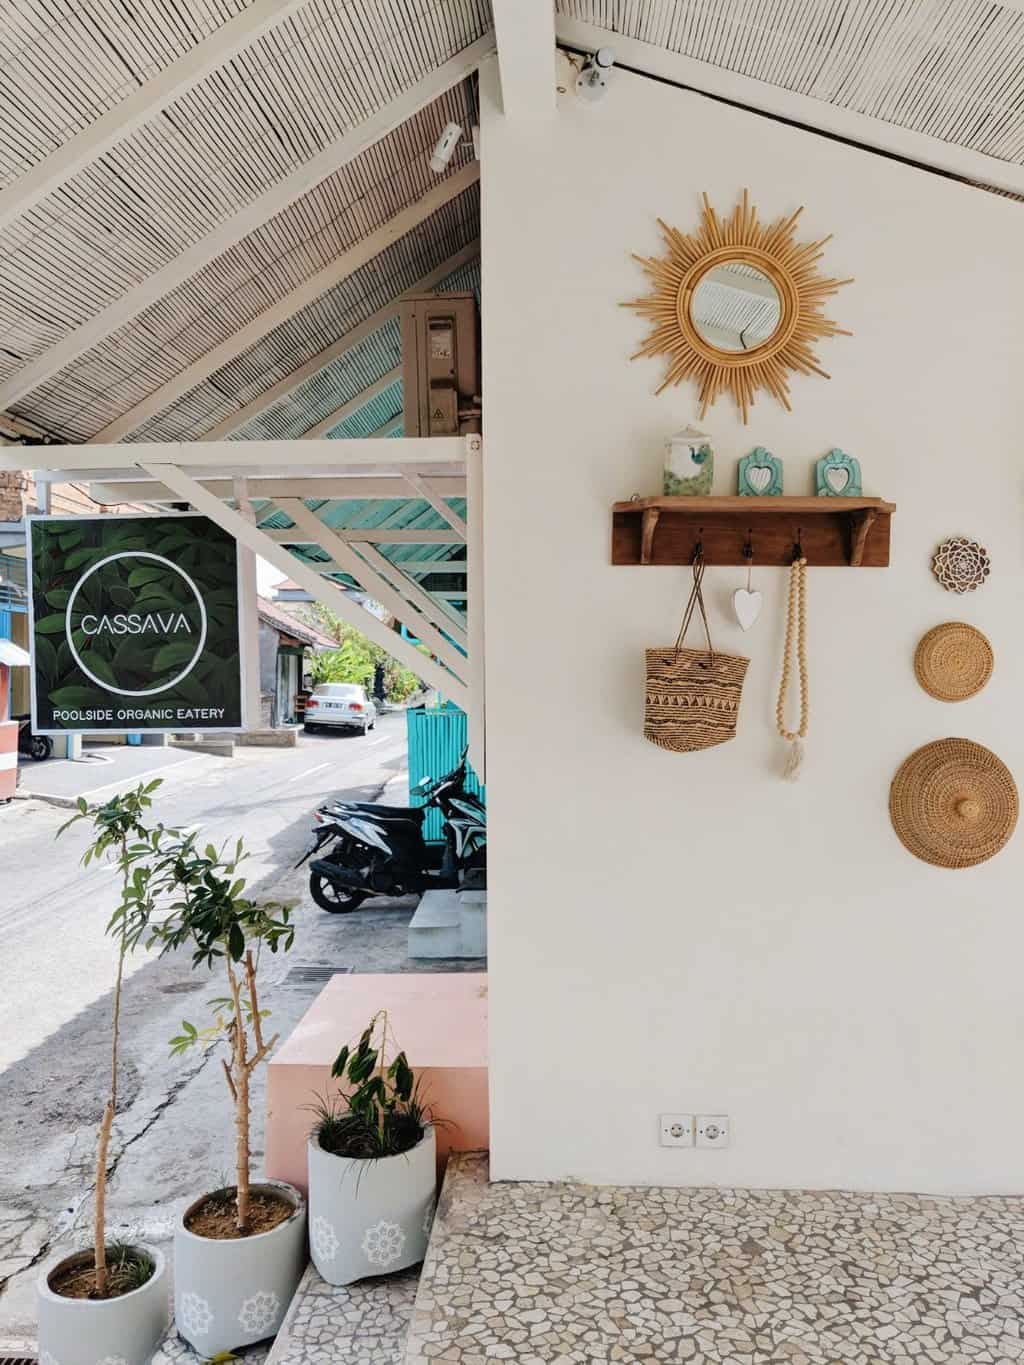 Best Vegan and Plant-Based Cafes To Try in Bali